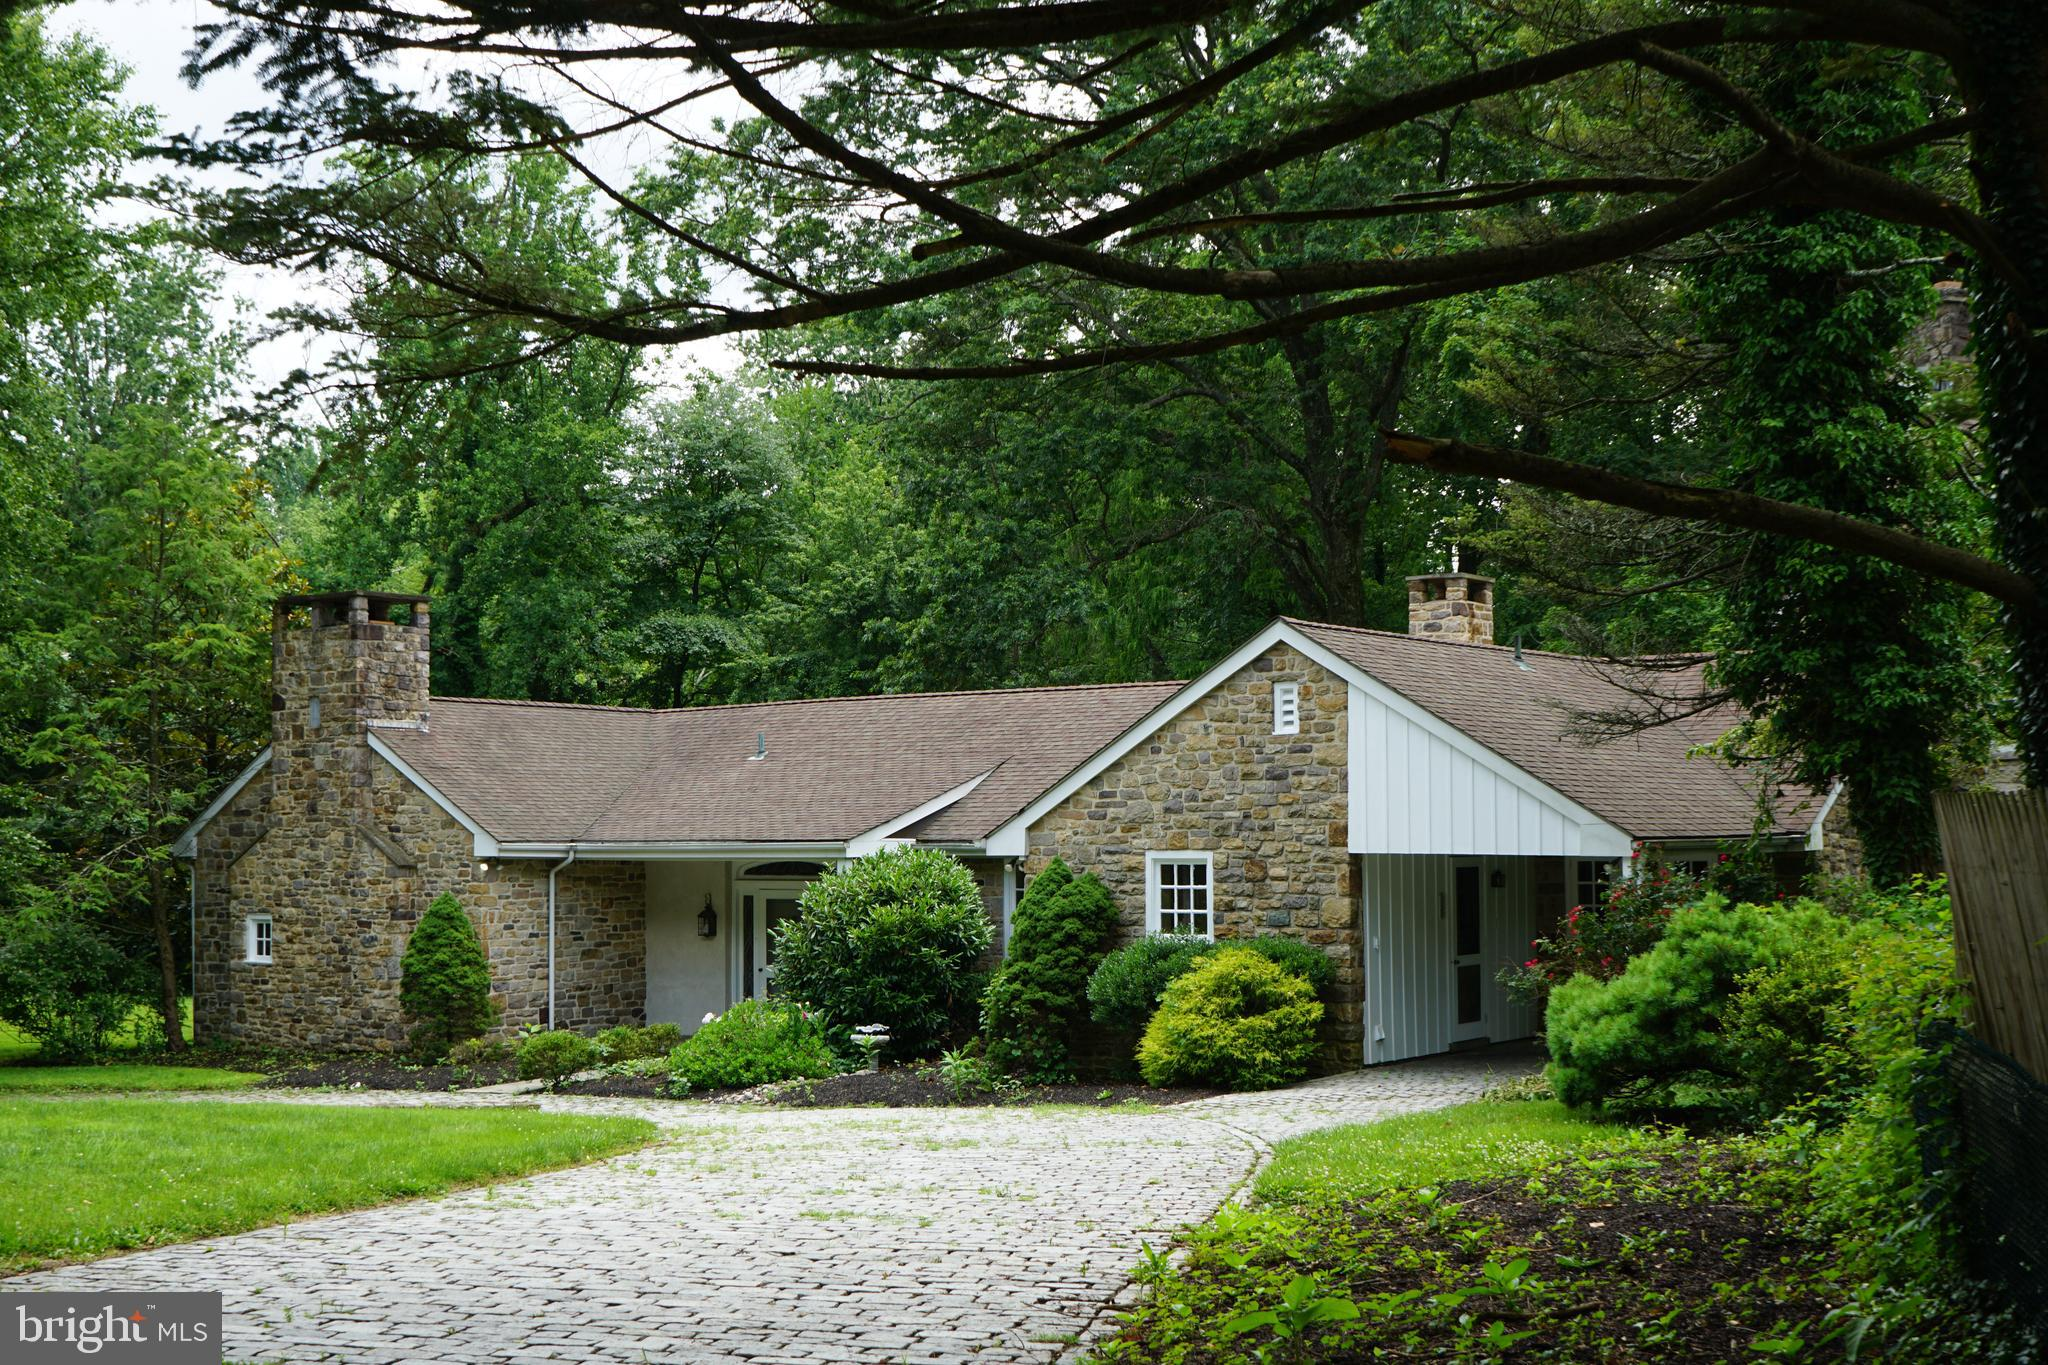 2141 PAPER MILL ROAD, HUNTINGDON VALLEY, PA 19006